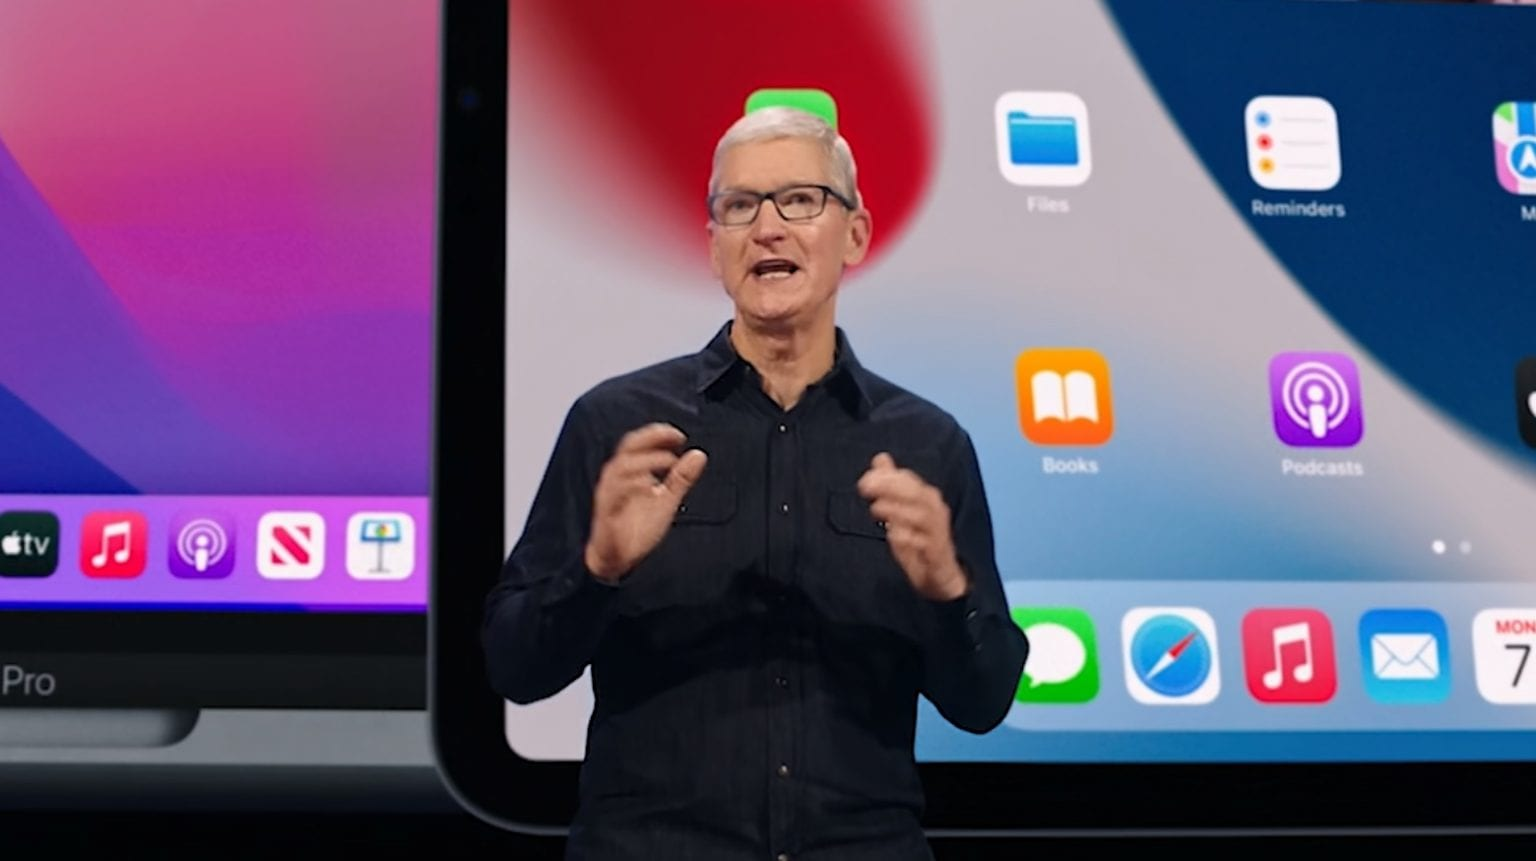 Tim Cook at WWDC 2021